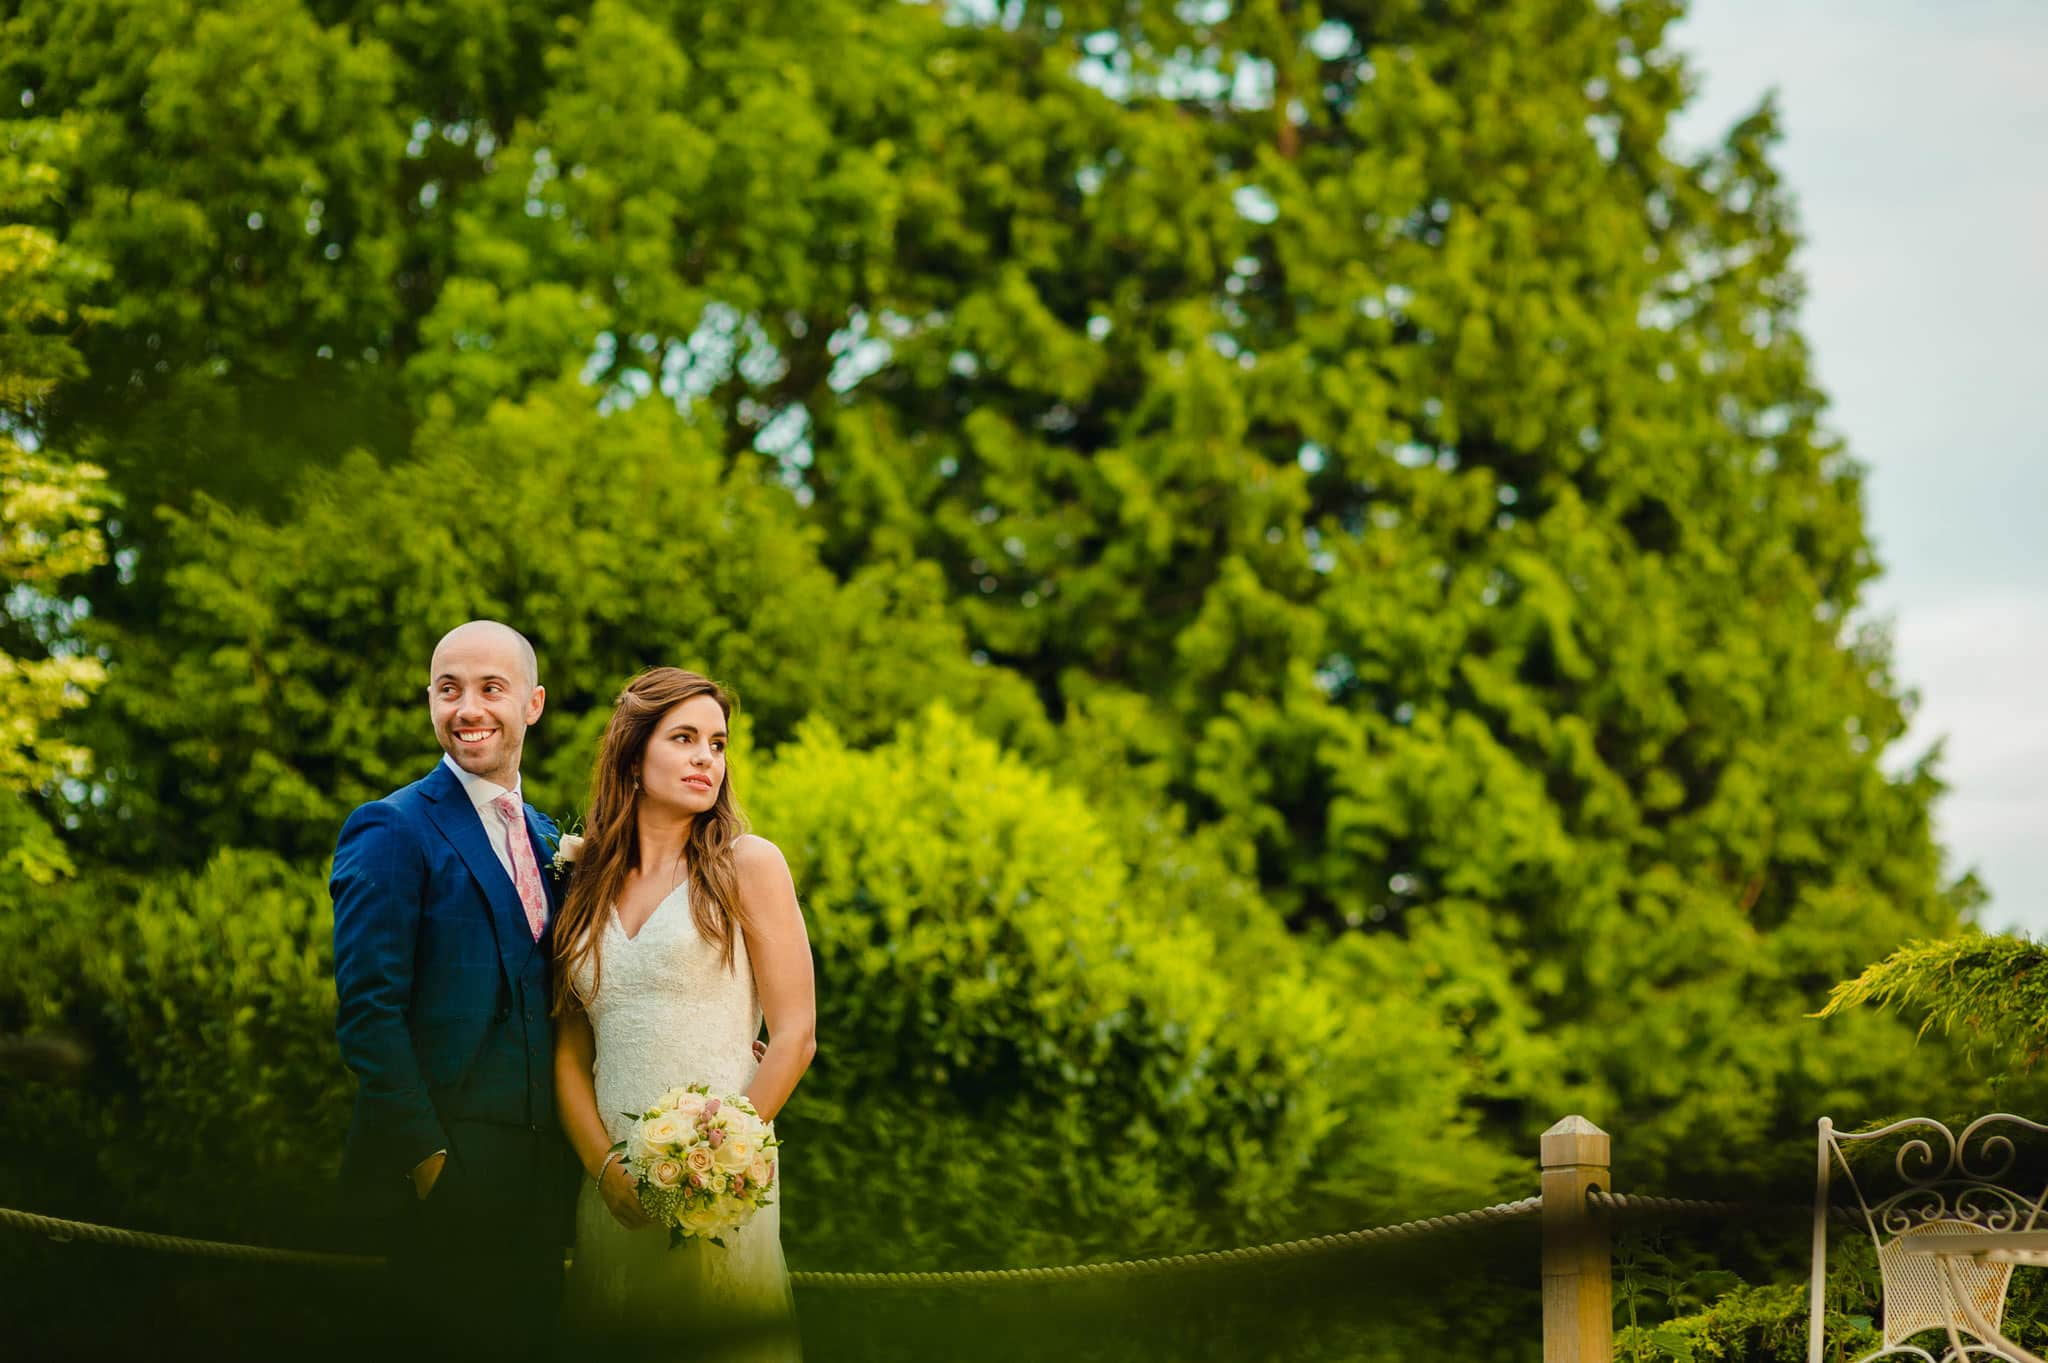 Wedding at Redhouse Barn in Stoke Prior, Worcestershire 157